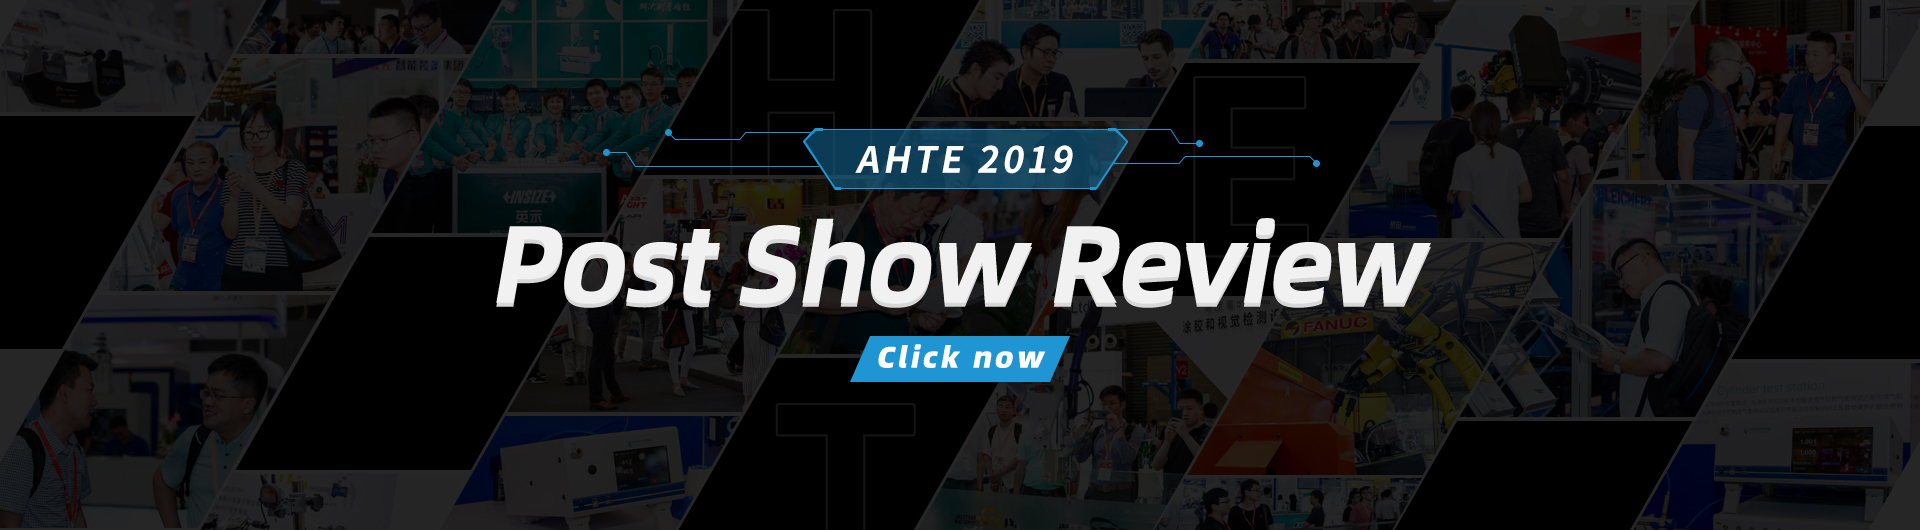 AHTE 2019 Post Show Review | Demonstrate a new horizon of intelligent automation assembly